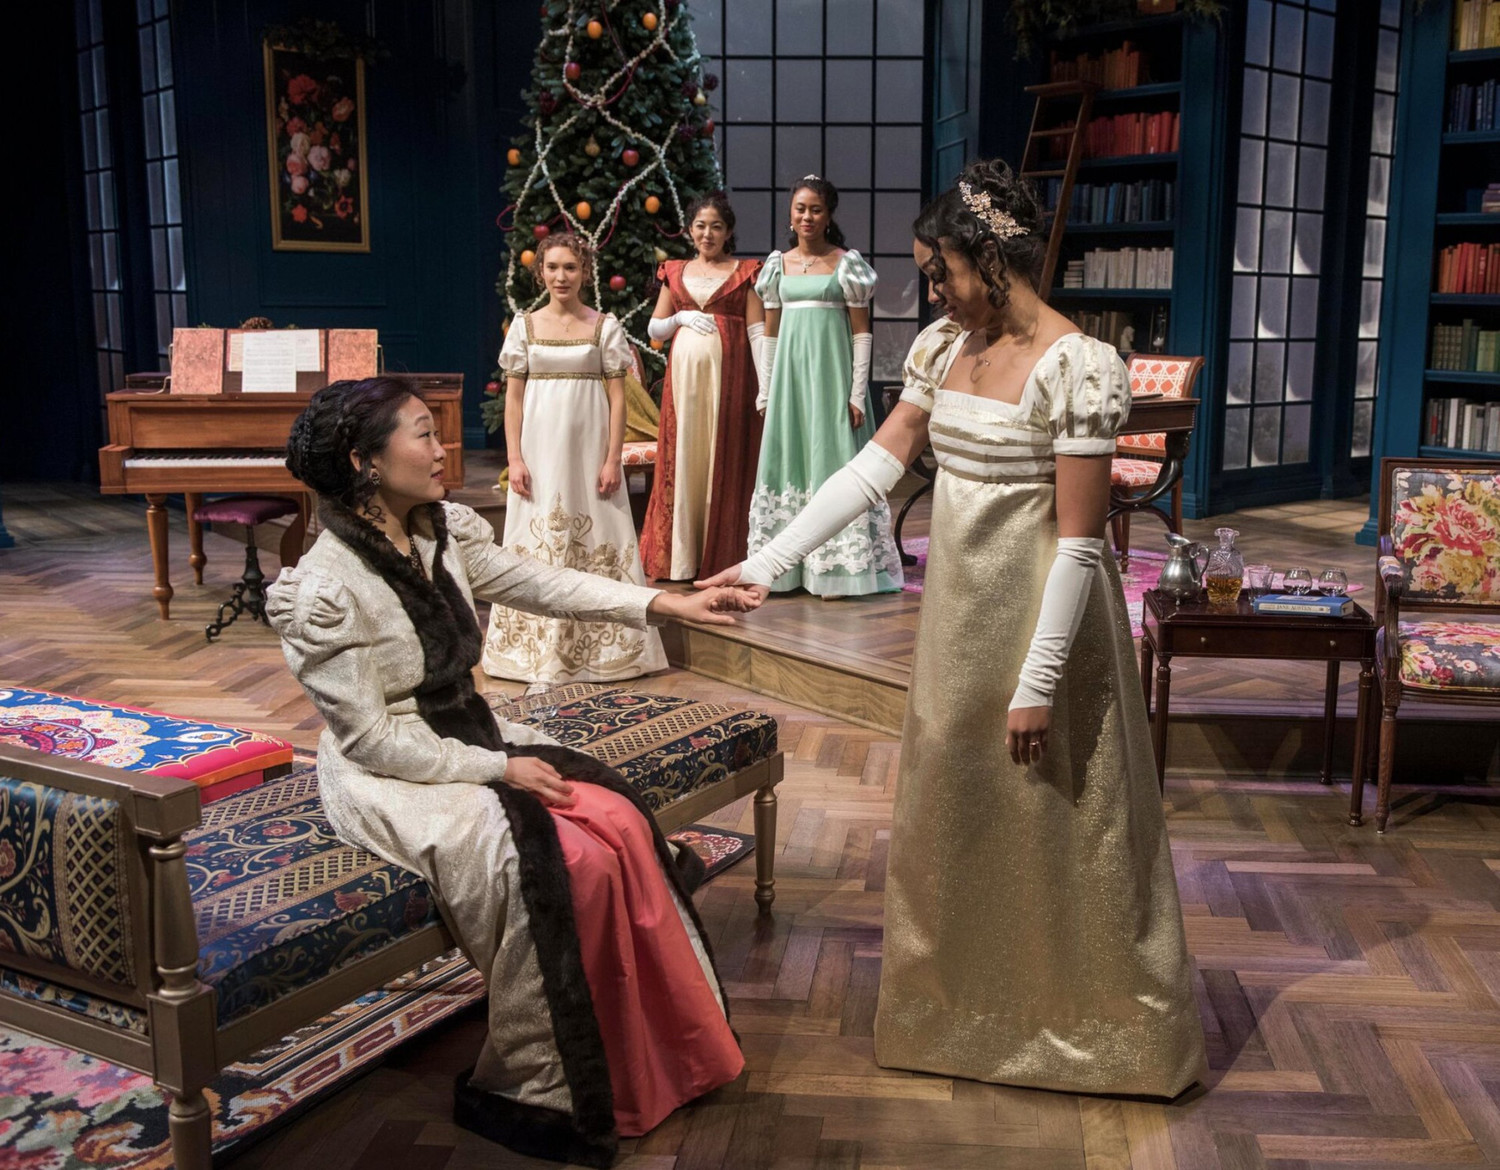 Christmas At Pemberley.Bww Review Witty Wonderful Miss Bennet Christmas At